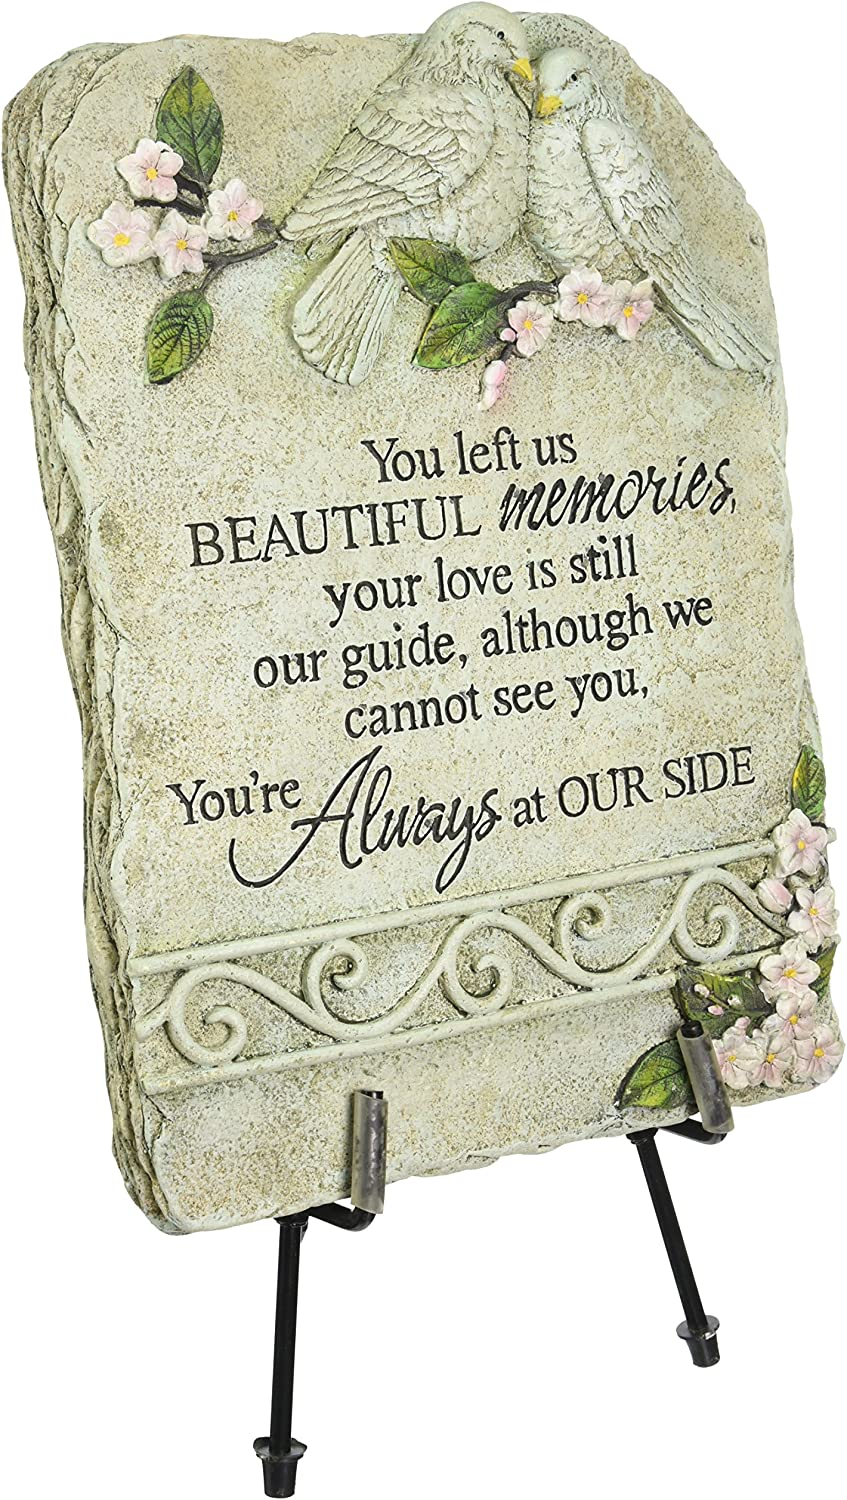 Carson Home Accents Peaceful Reflections Garden Marker with Easel Stand, 15-Inch High, Memories : Outdoor Decorative Stones : Garden & Outdoor